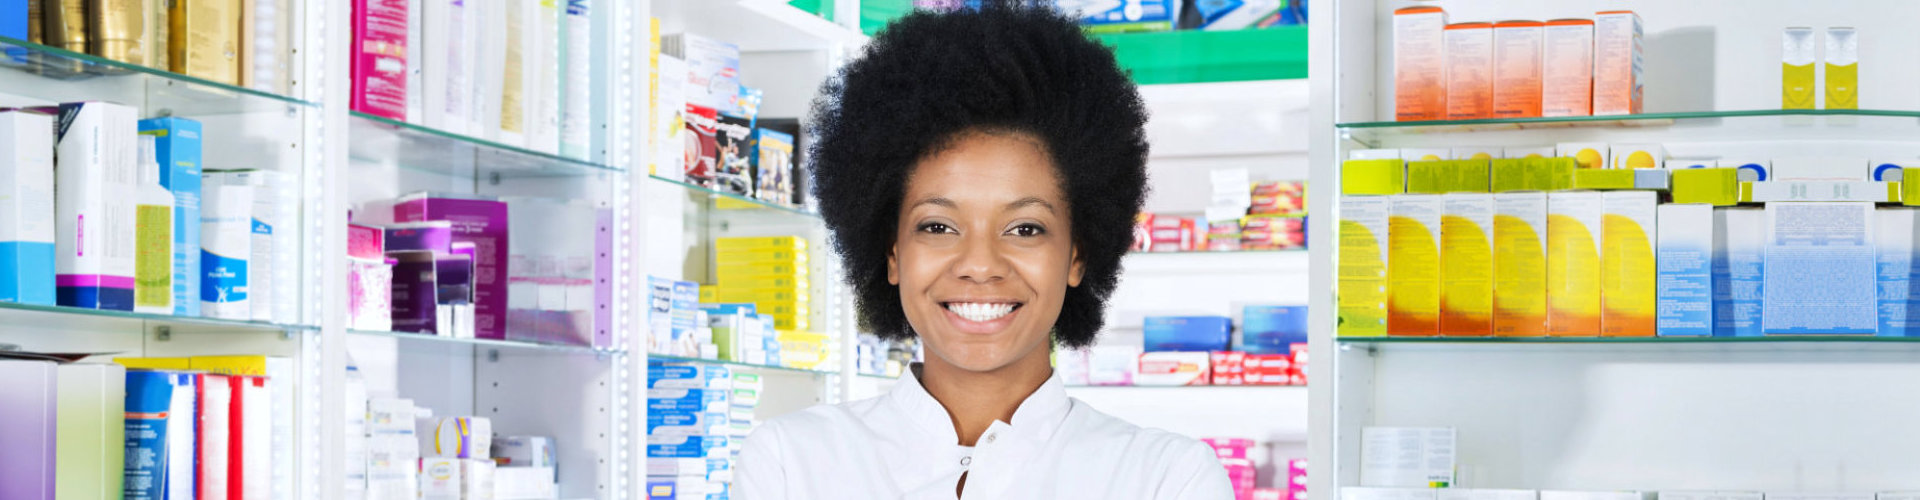 lady pharmacist smiling